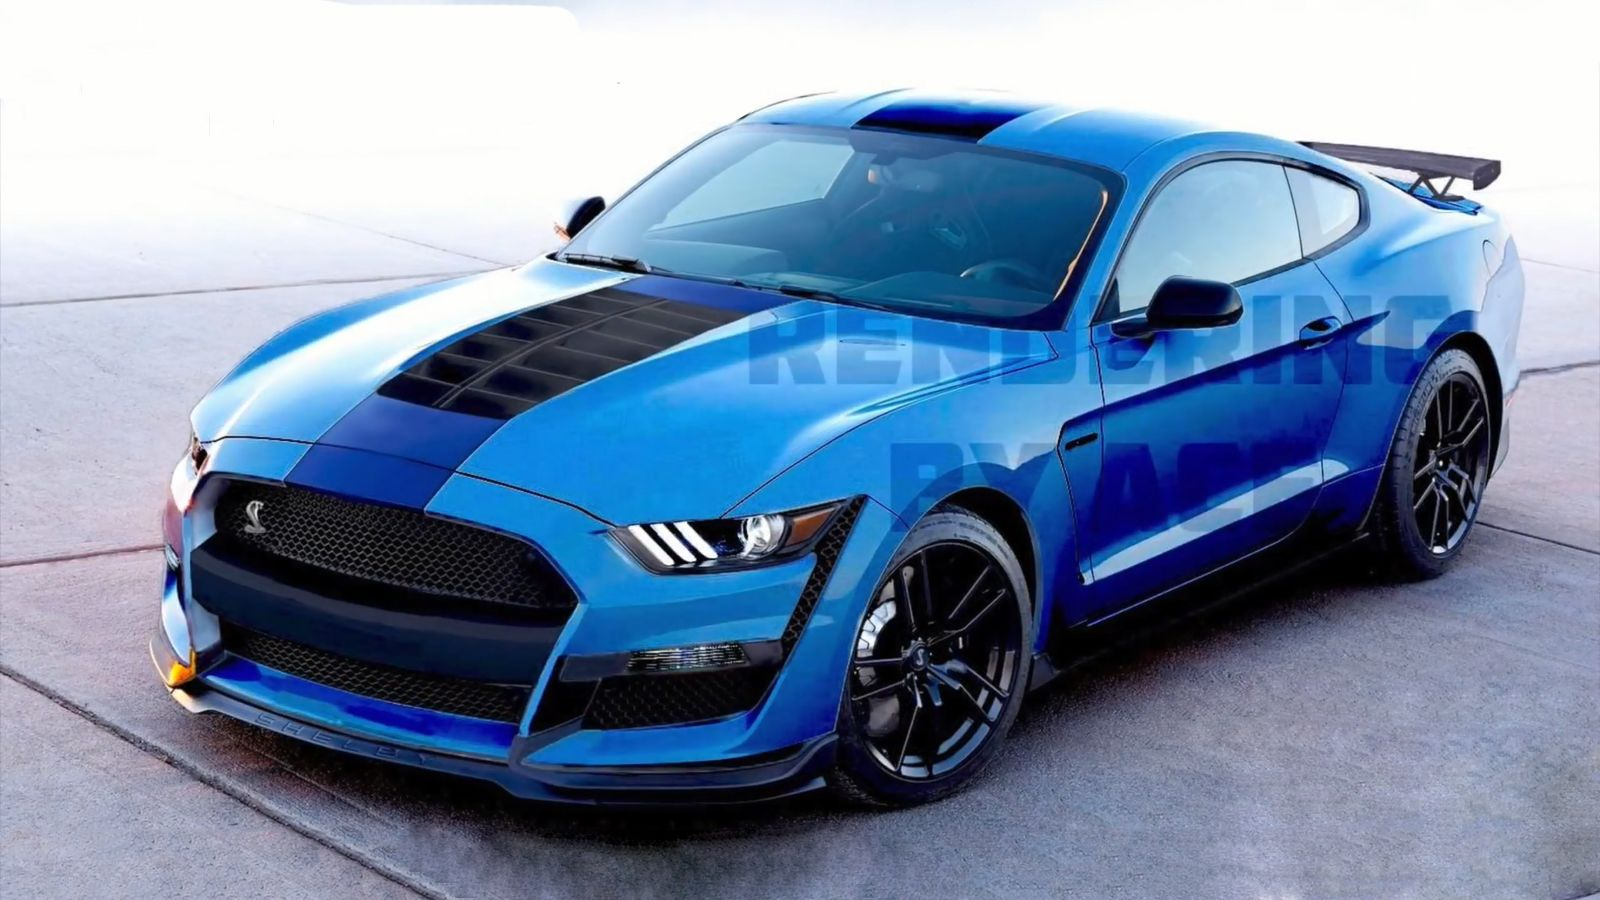 2019 shelby gt500 what we know so far muscle cars shelby gt500 cars ford mustang shelby. Black Bedroom Furniture Sets. Home Design Ideas